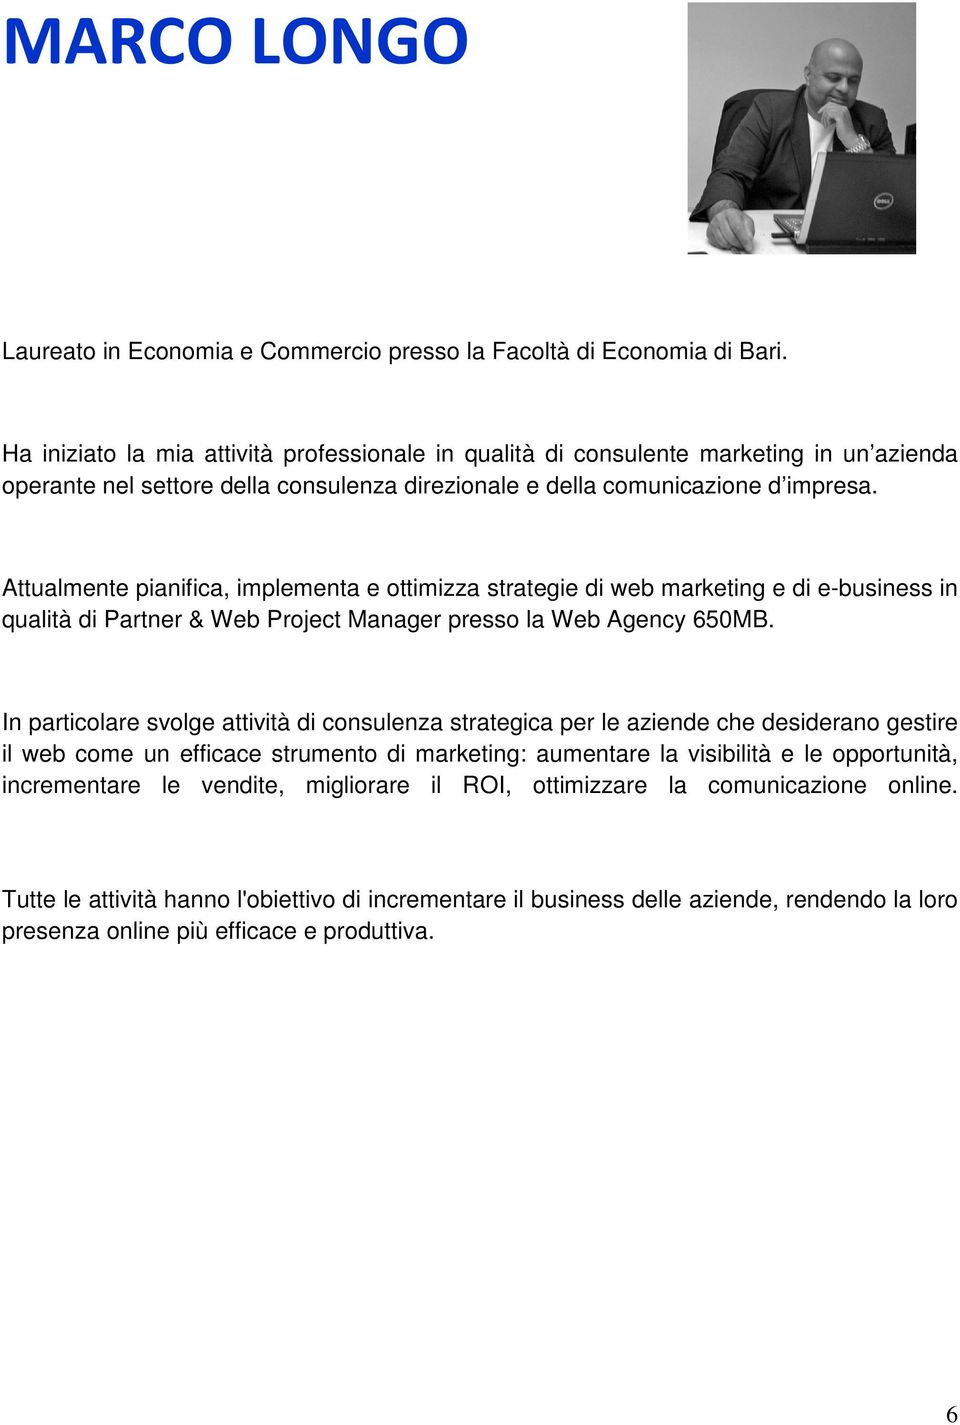 Attualmente pianifica, implementa e ottimizza strategie di web marketing e di e-business in qualità di Partner & Web Project Manager presso la Web Agency 650MB.